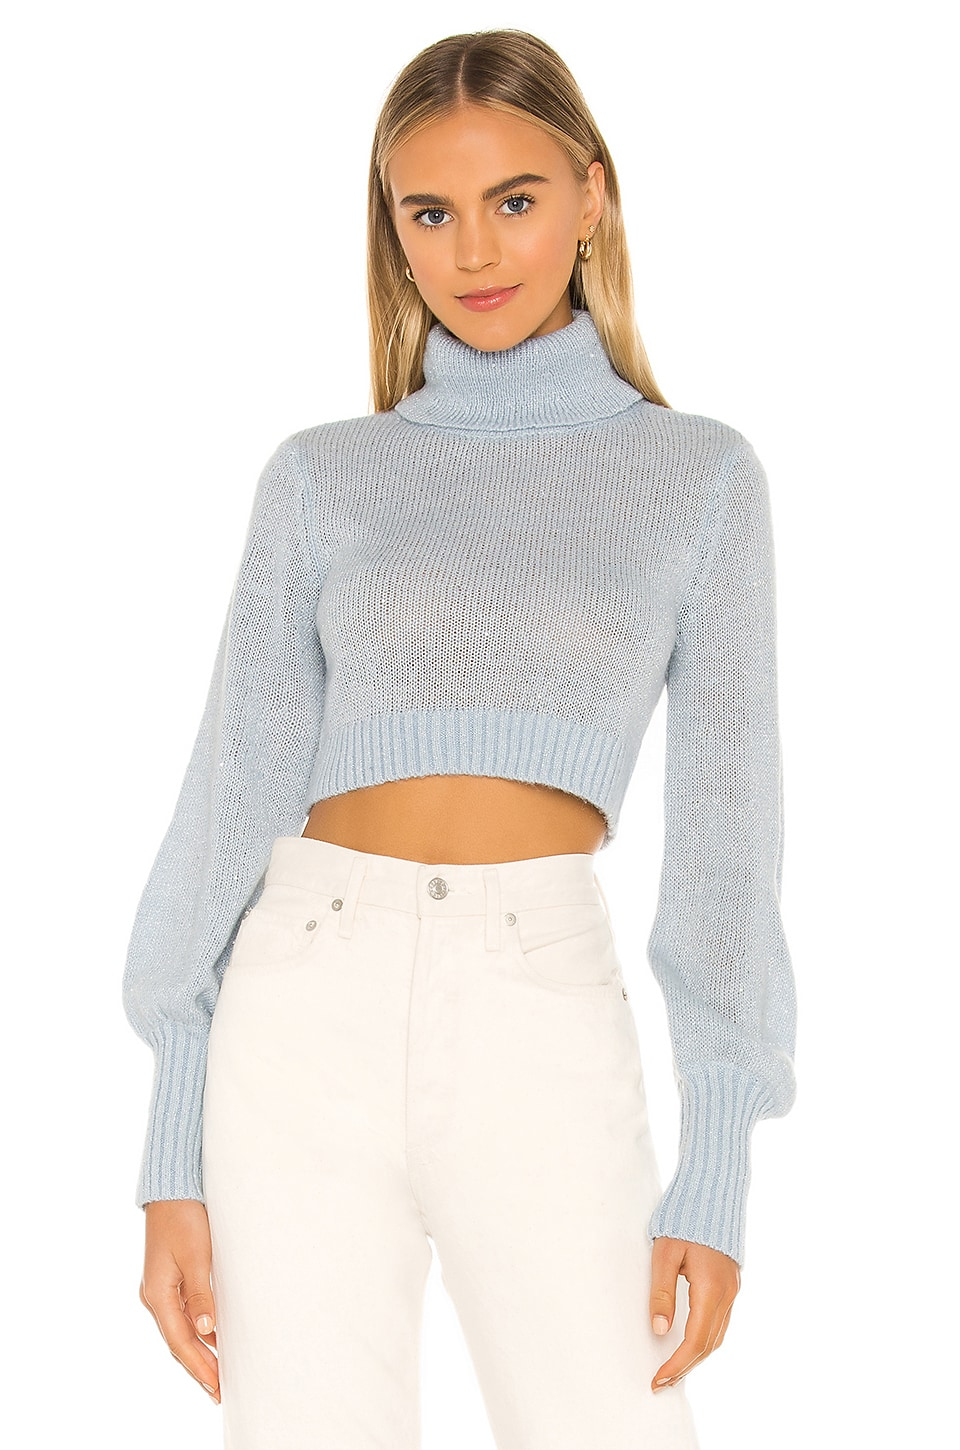 MAJORELLE Jackson Turtleneck in Blue Sequins